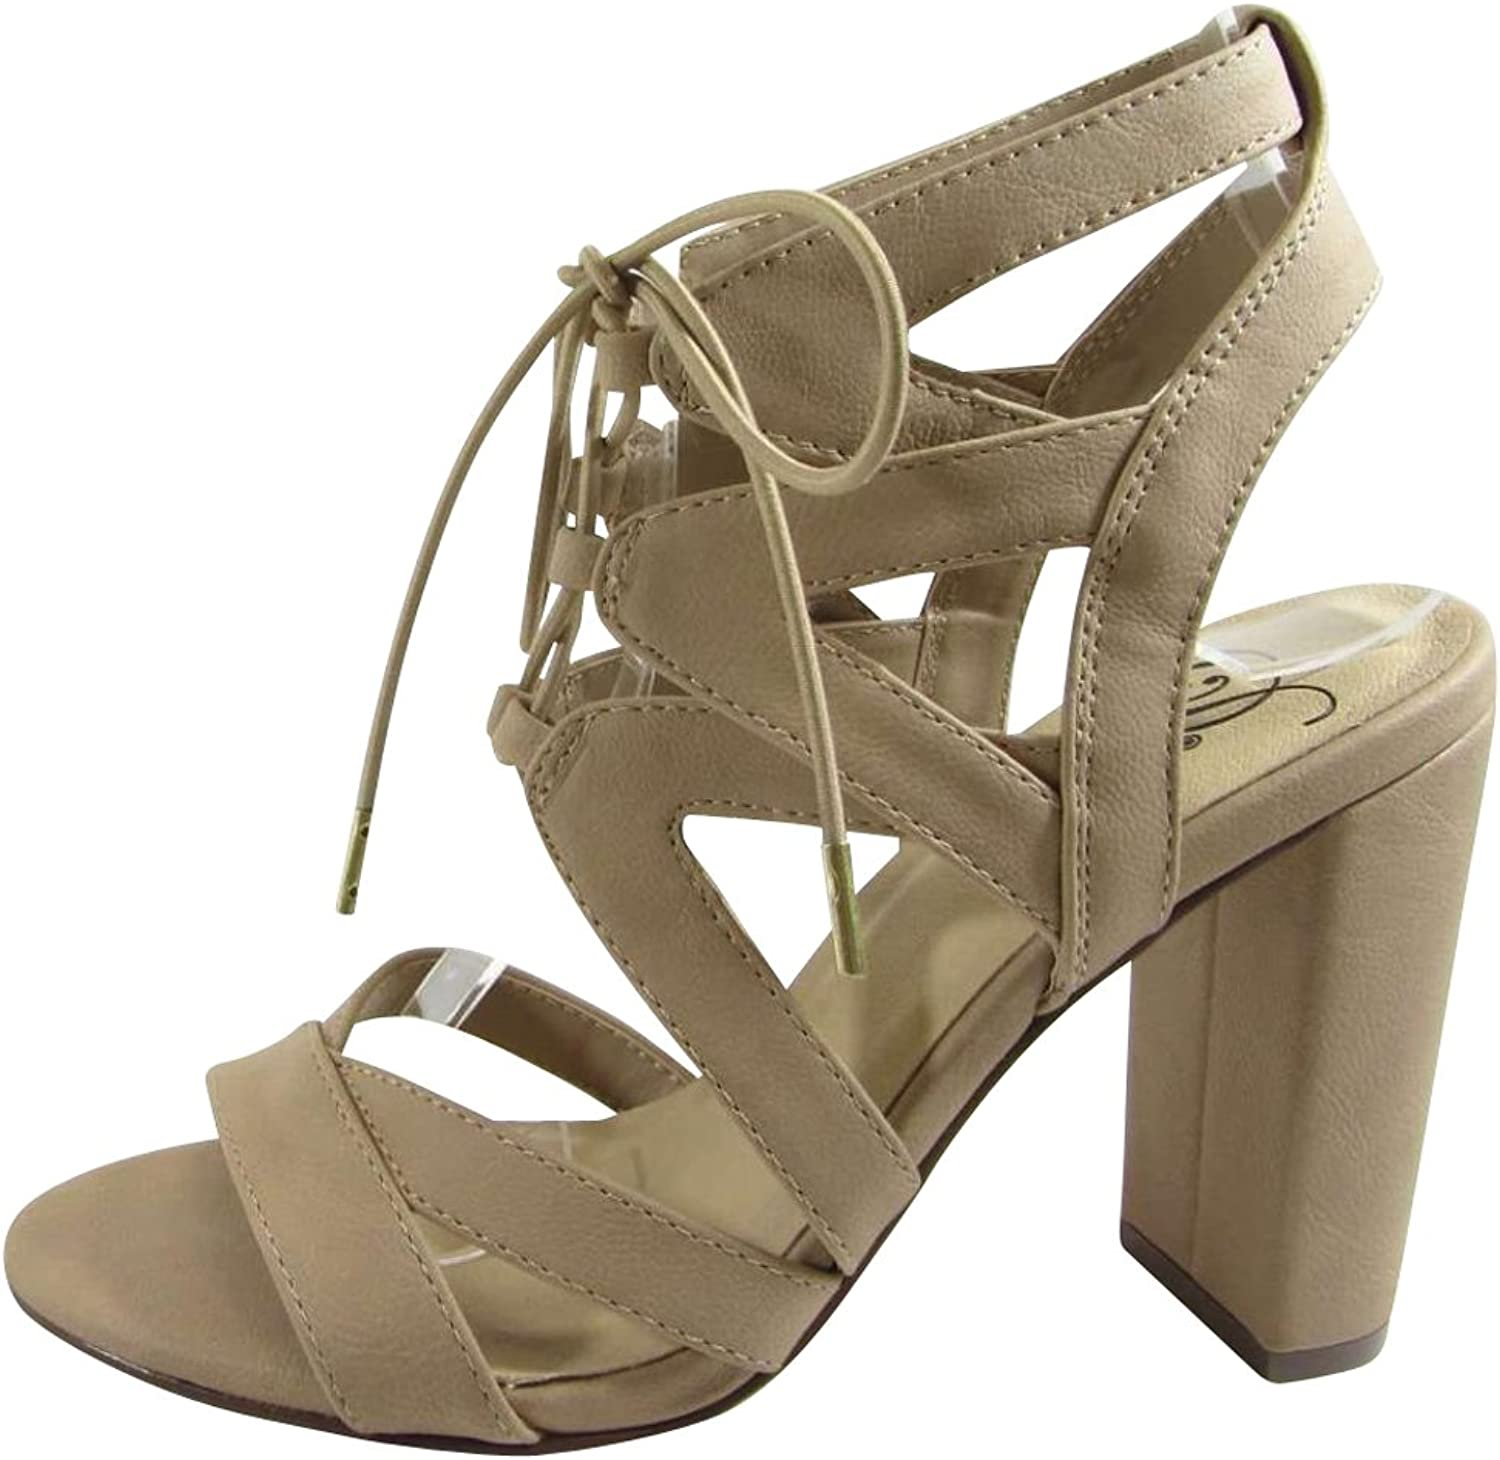 City Classified Footwear Women's Stretch Elastic Ankle Strappy Bungee Lace Chunky Stacked High Heel Dress Sandal